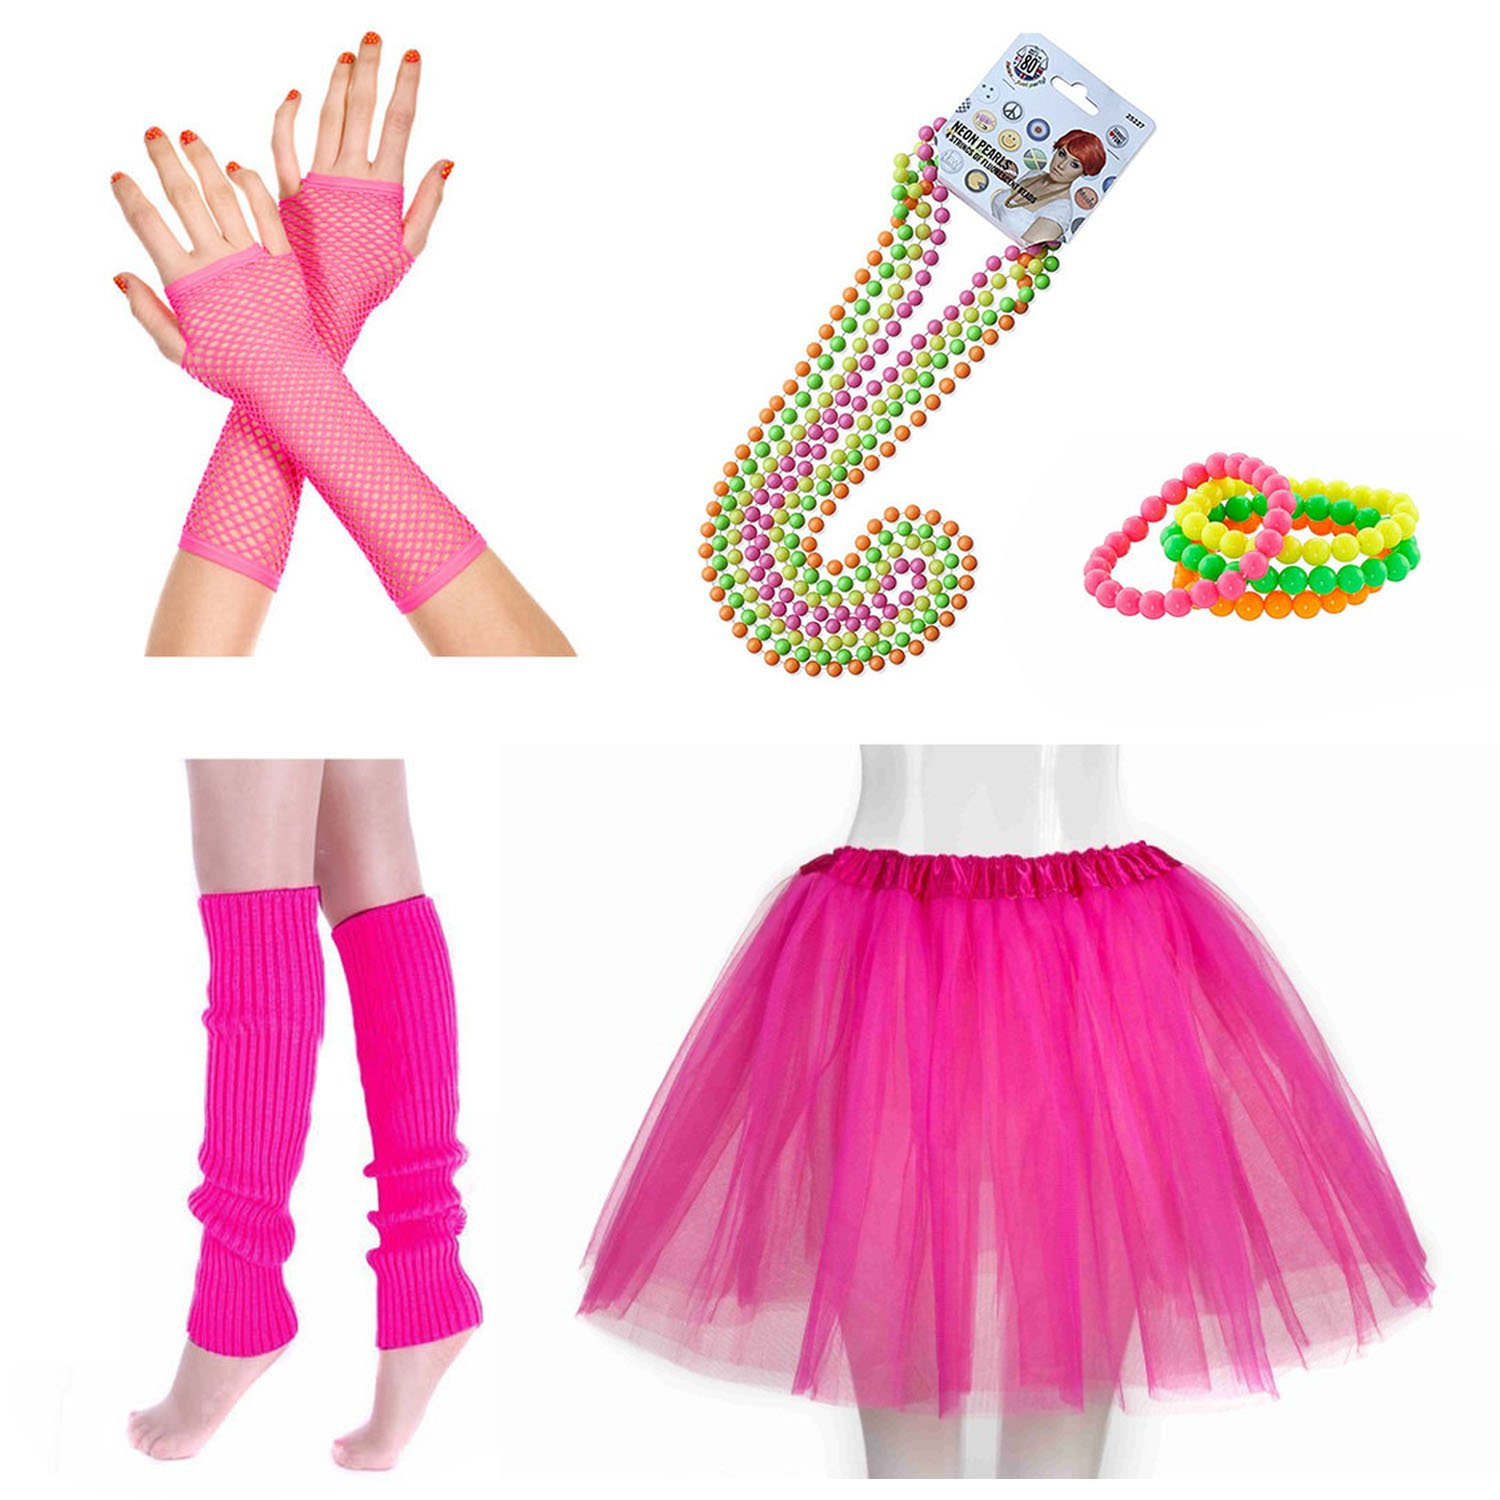 INNOBASE 80s Fancy Dress Neon Adult Tutu,Leg Warmers,Fishnet Pink Gloves,Fluorescent Bead Necklaces and Bracelets 1980s Party Costume Accessories Set for Girls Women Night Out Party (A1) LDCC-20170907-80sA1